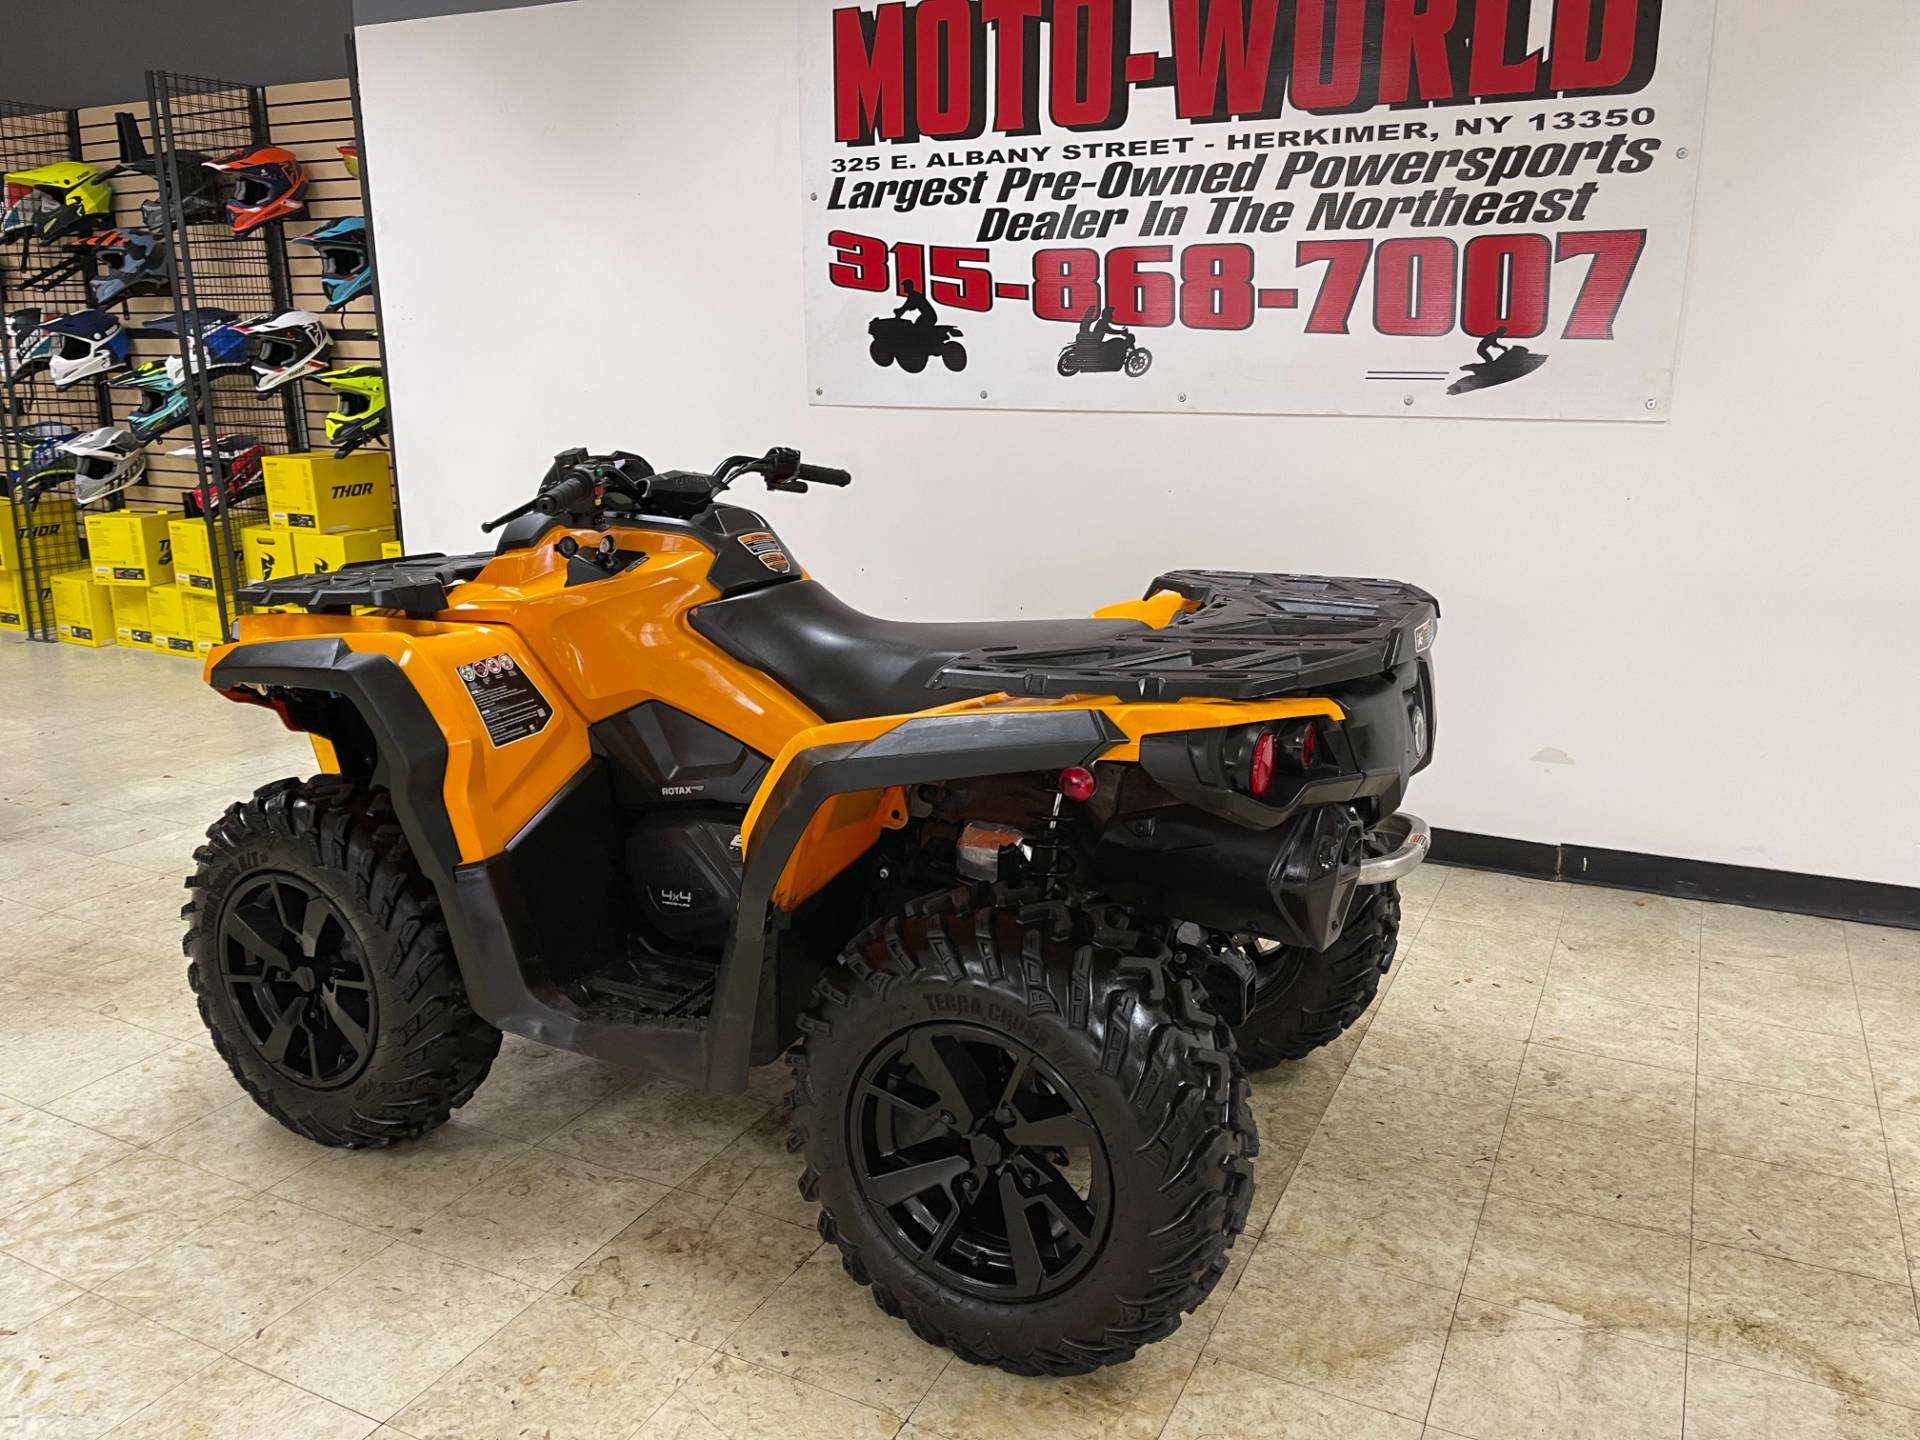 2019 Can-Am Outlander DPS 850 in Herkimer, New York - Photo 3